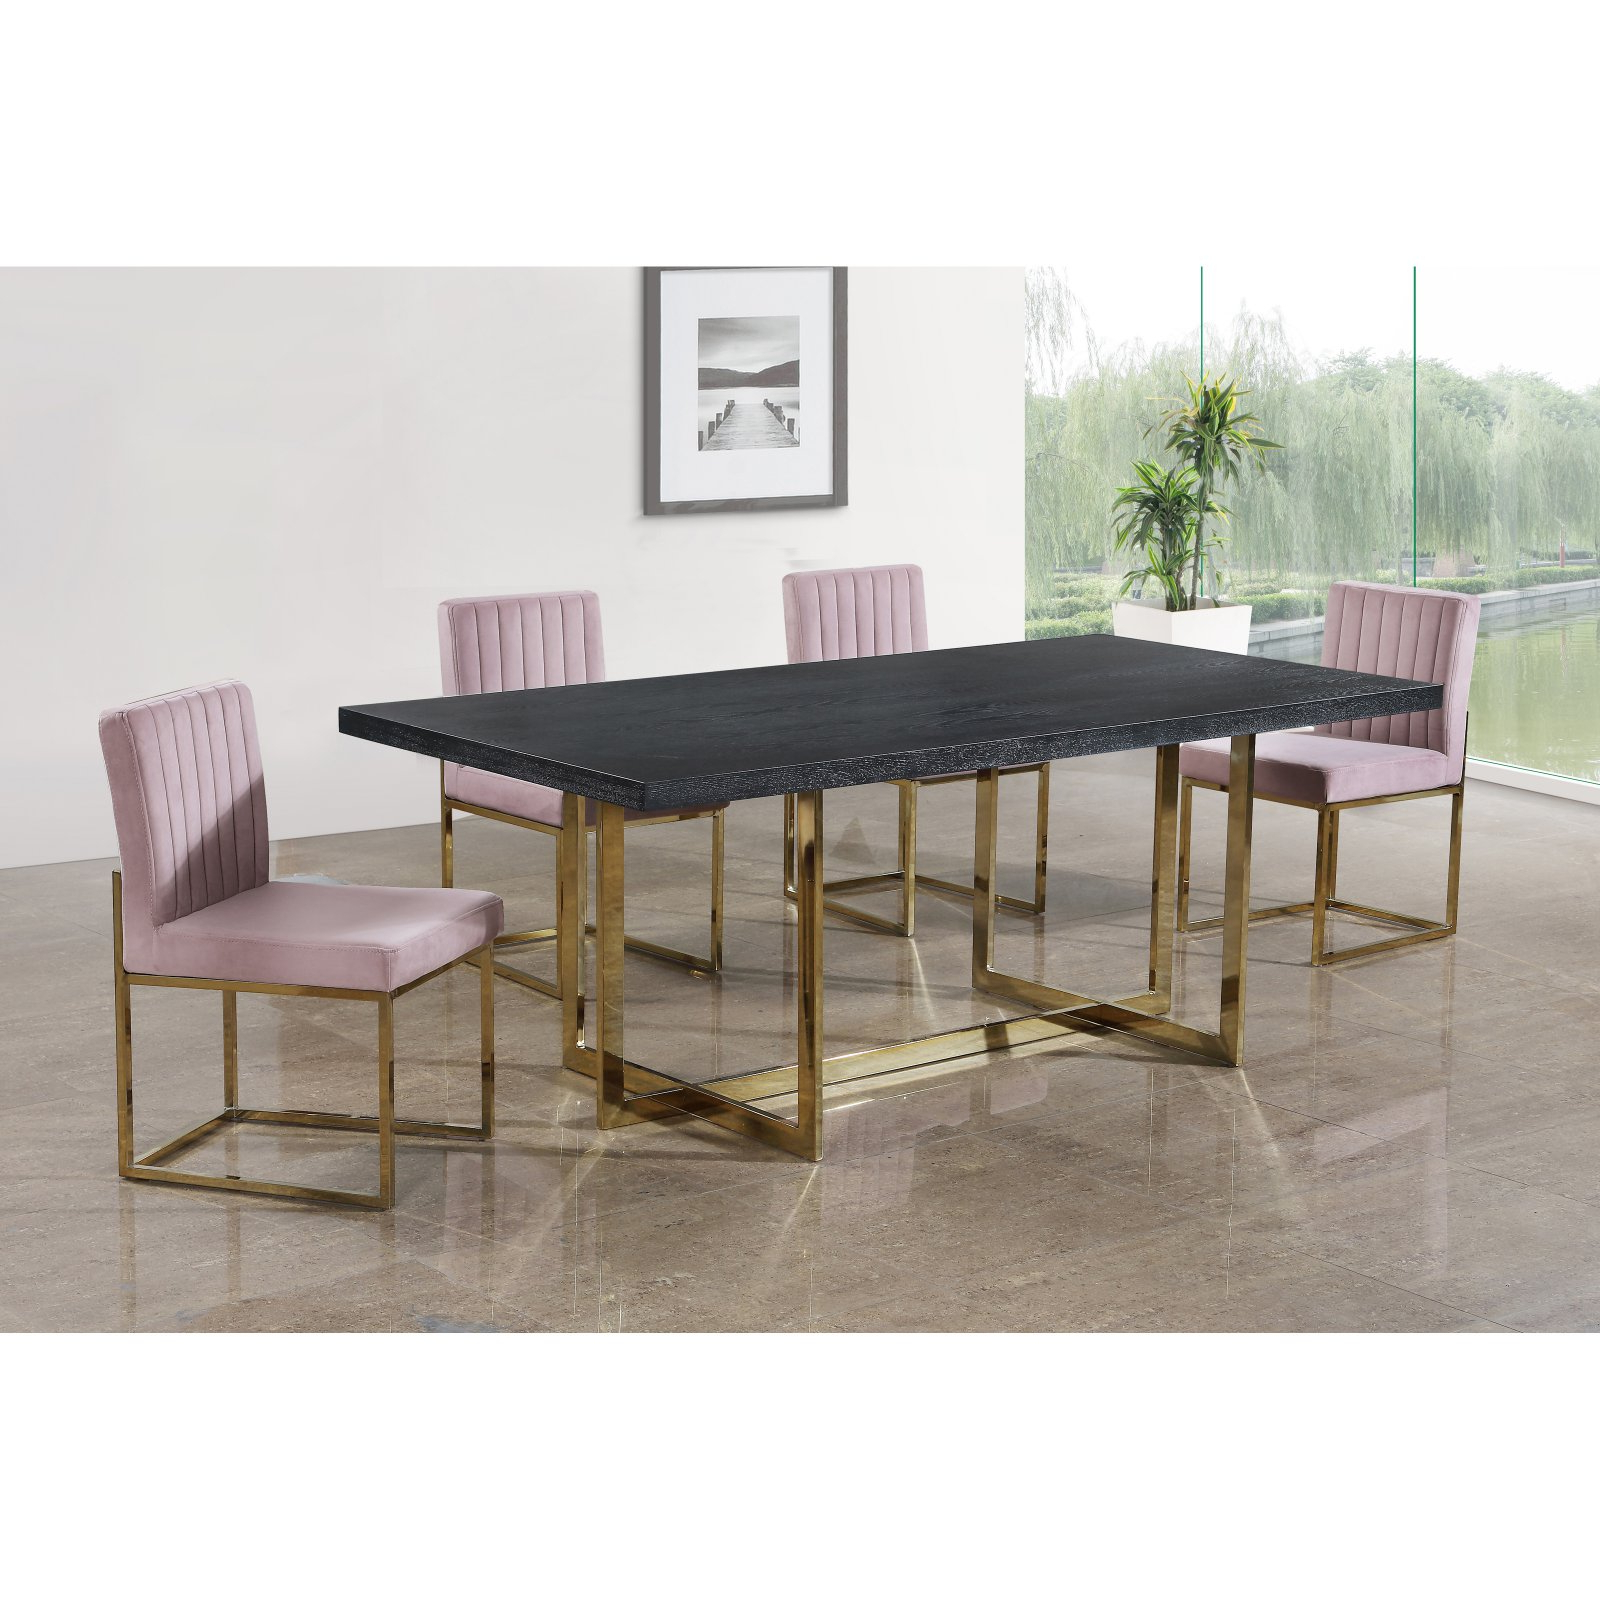 Most Current Meridian Furniture Inc Elle Rectangular Dining Table Inside Charcoal Transitional 6 Seating Rectangular Dining Tables (View 22 of 30)